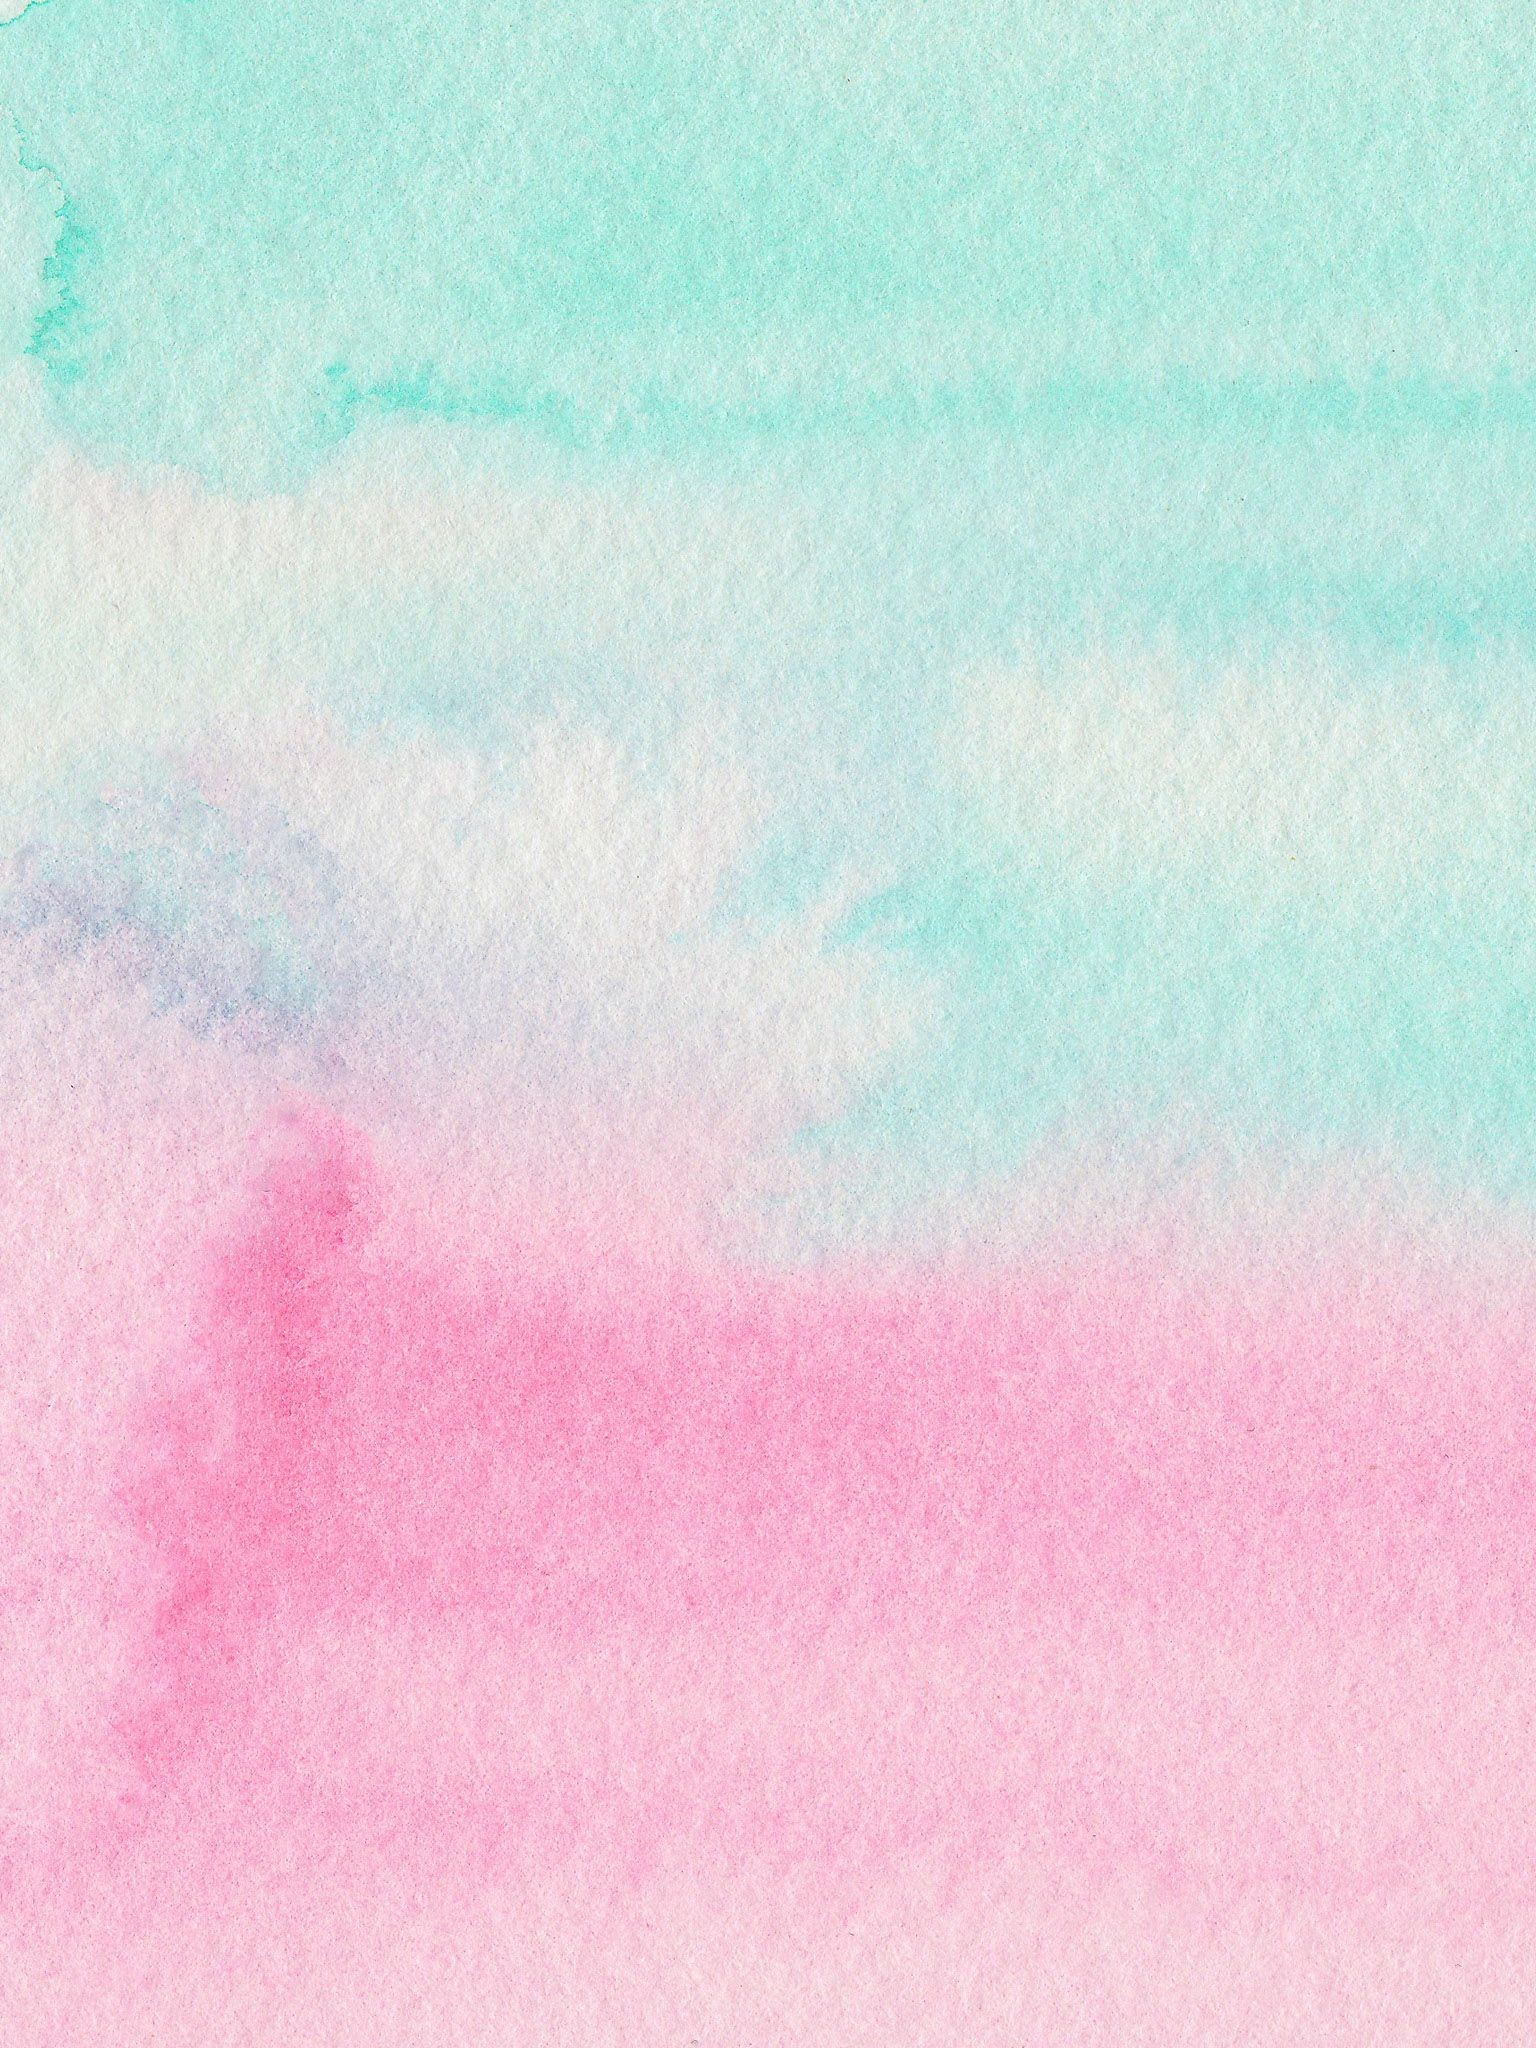 Res: 1536x2048, Ombre Desktop Wallpaper Downloads something peach